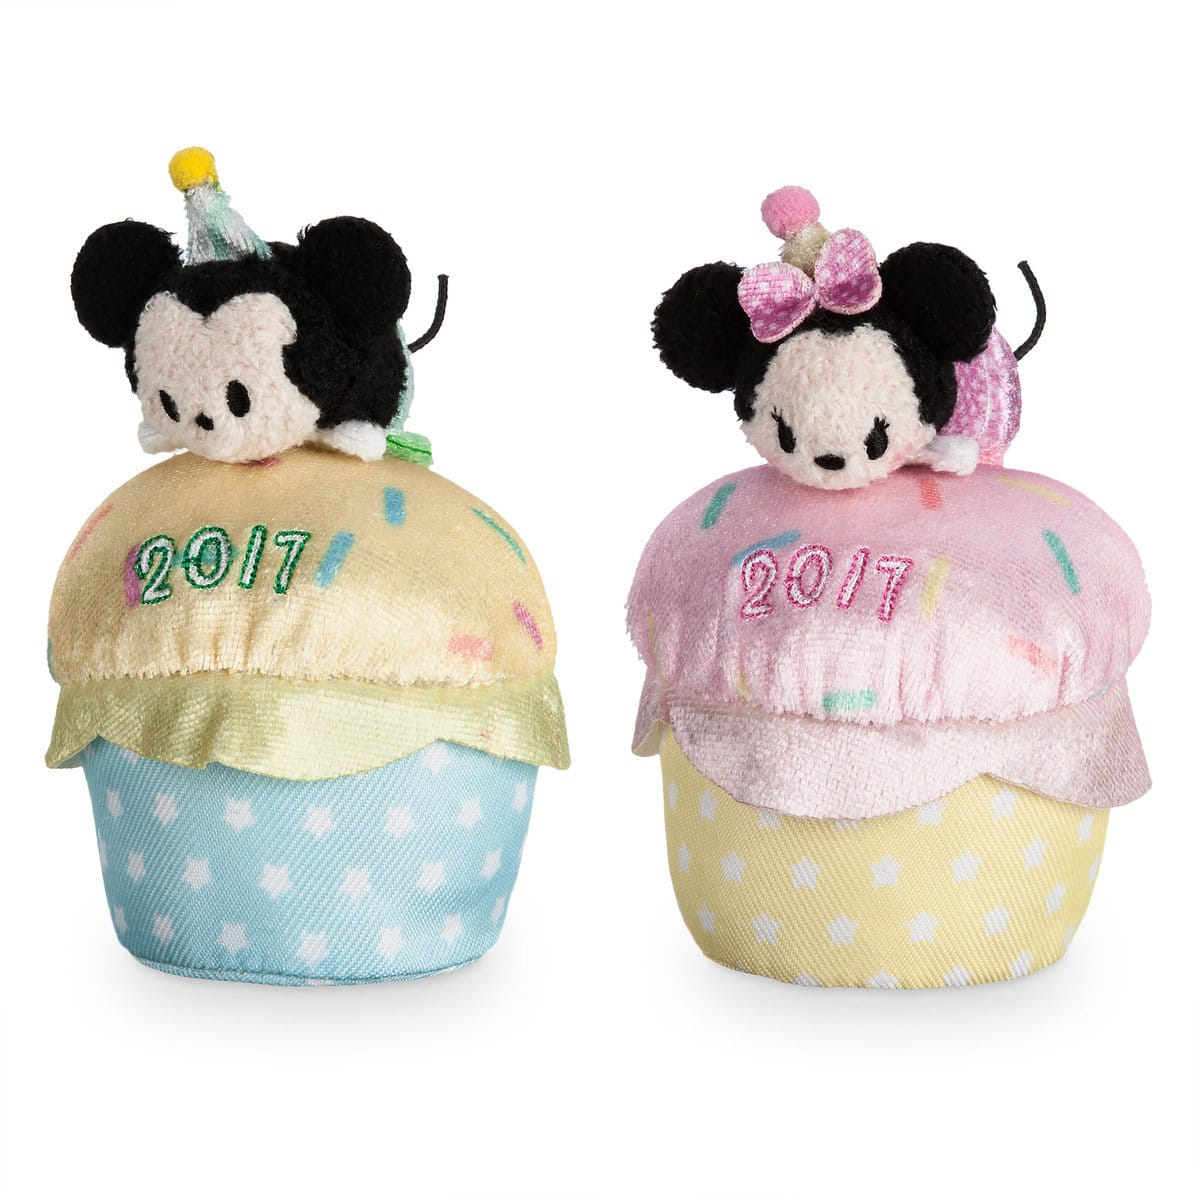 "Shop Disney Store: Minnie Mouse or Mickey Mouse 4"" Tsum Tsum Mini Plush (Birthday Cupcake 2017), Mickey Mouse 4"" Plush $2.99 Each & More + Free Shipping No Minimum"